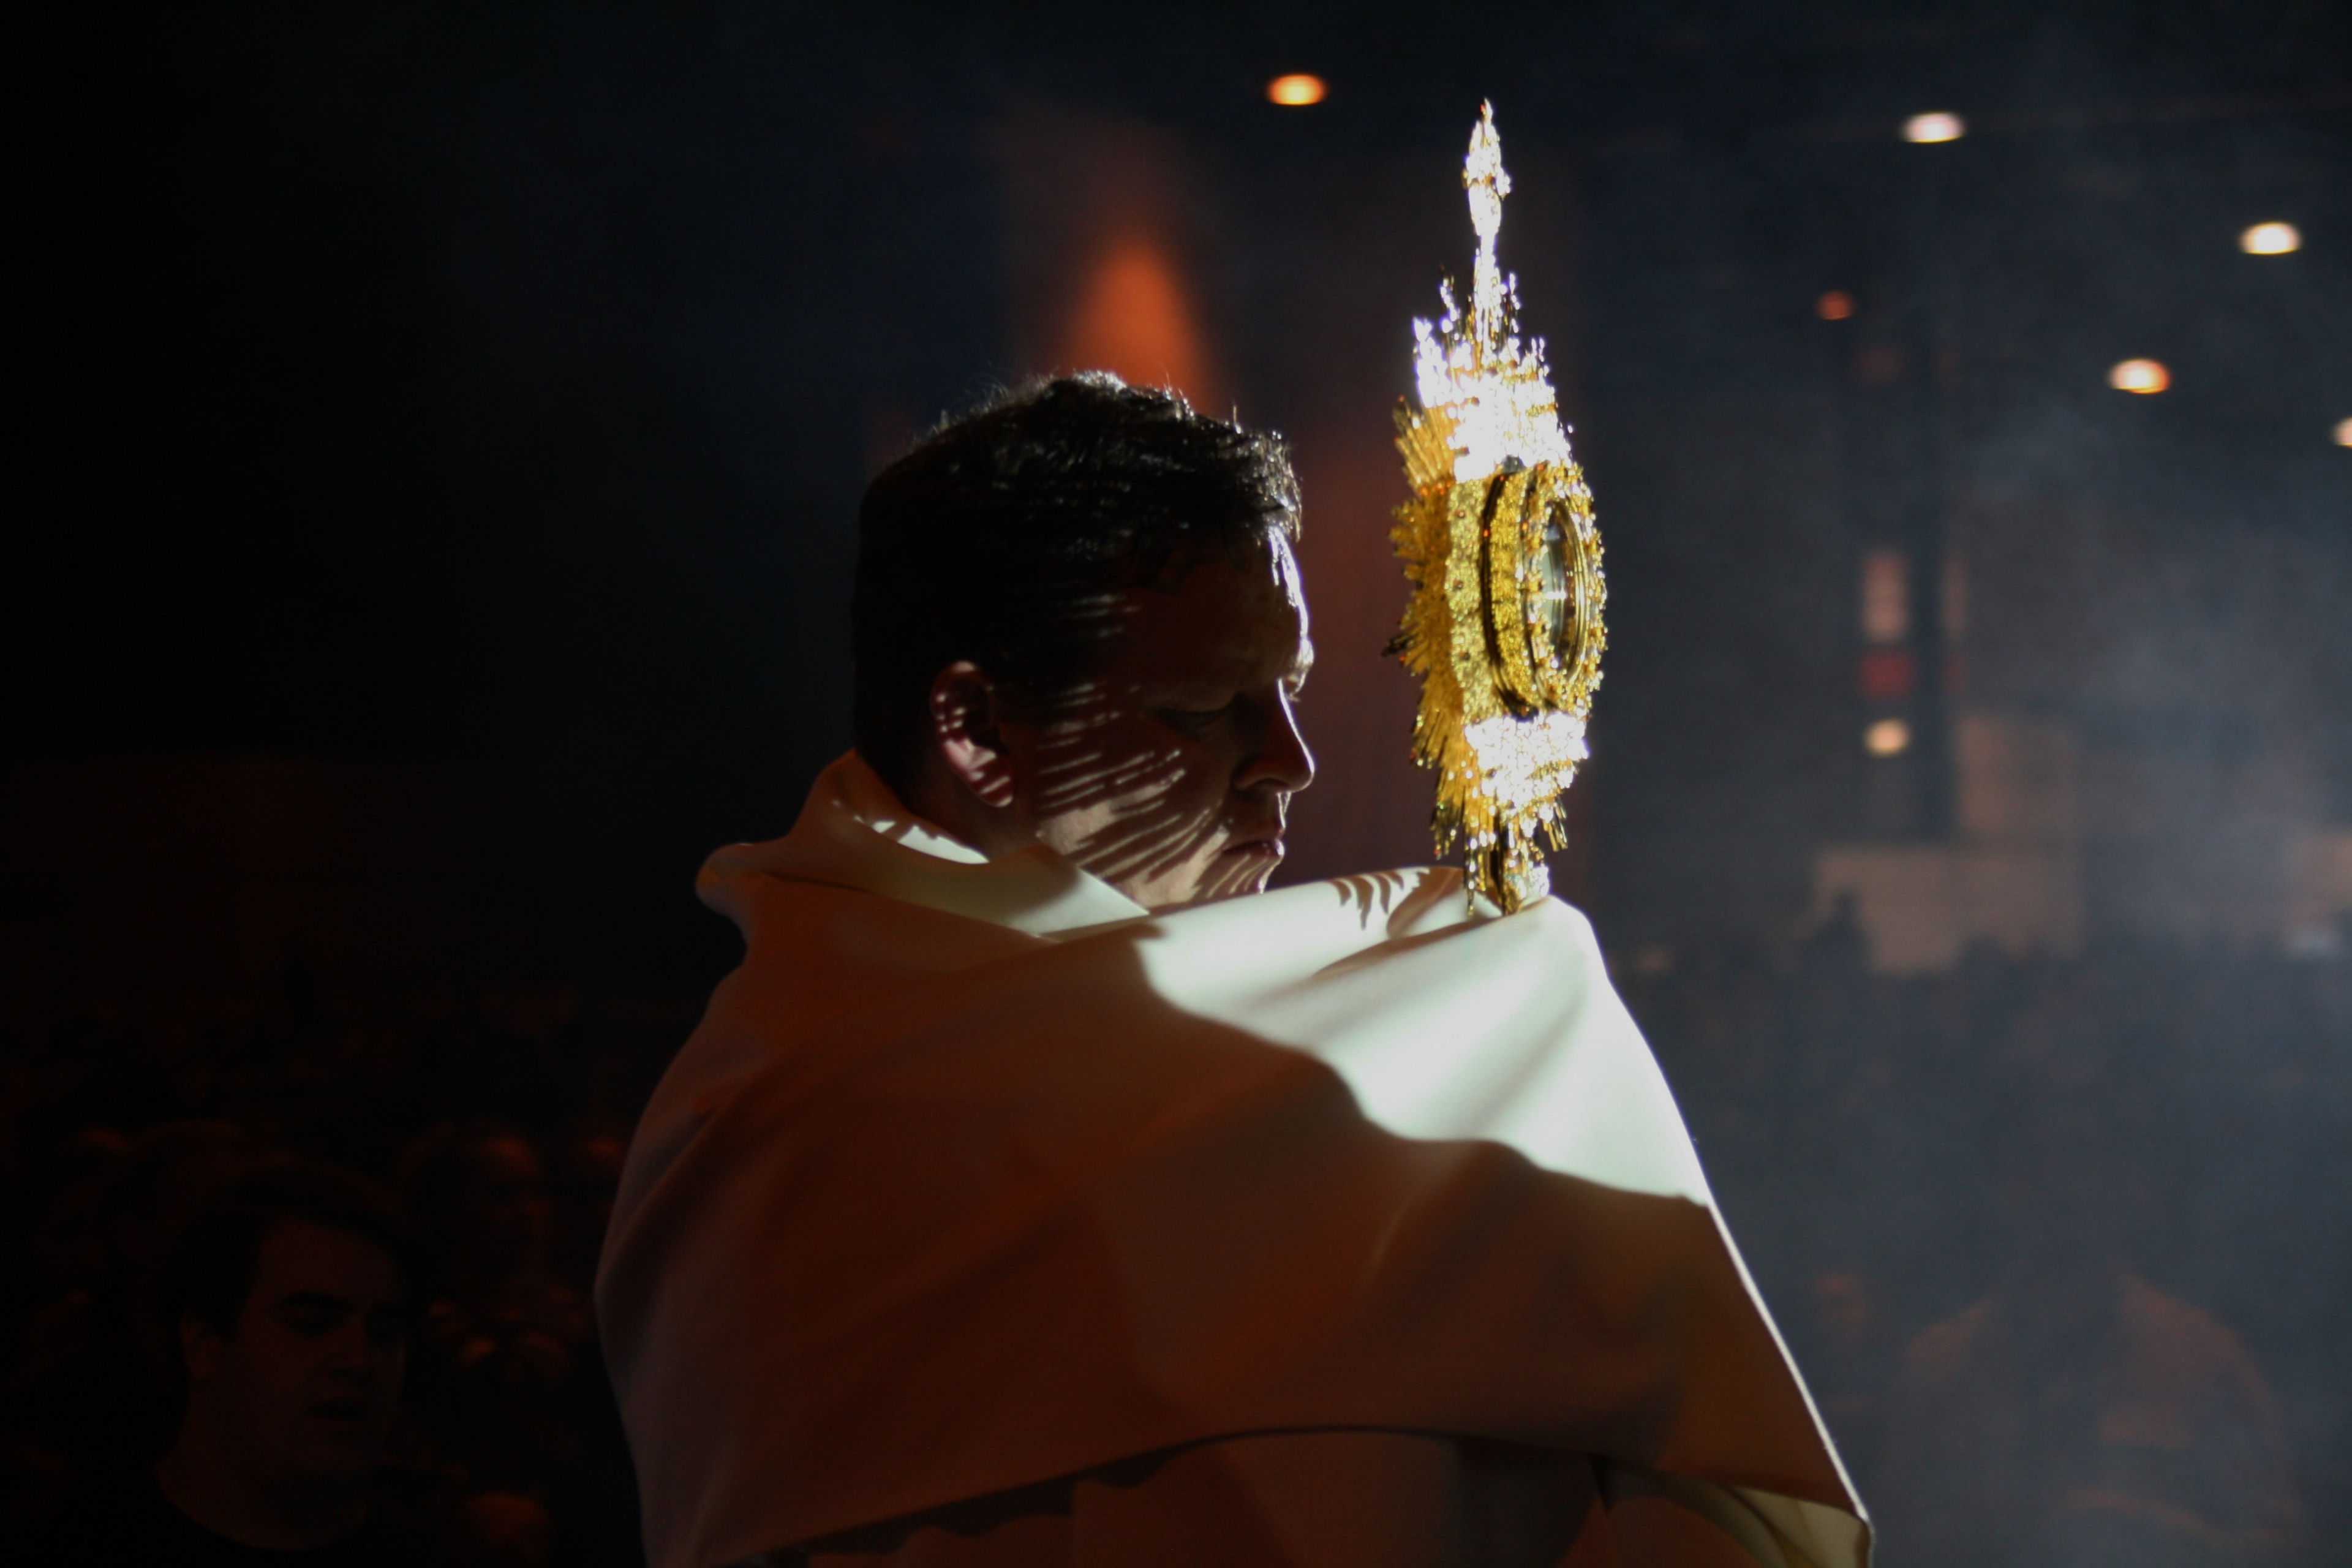 A priest raises the Blessed Sacrament for Benediction.